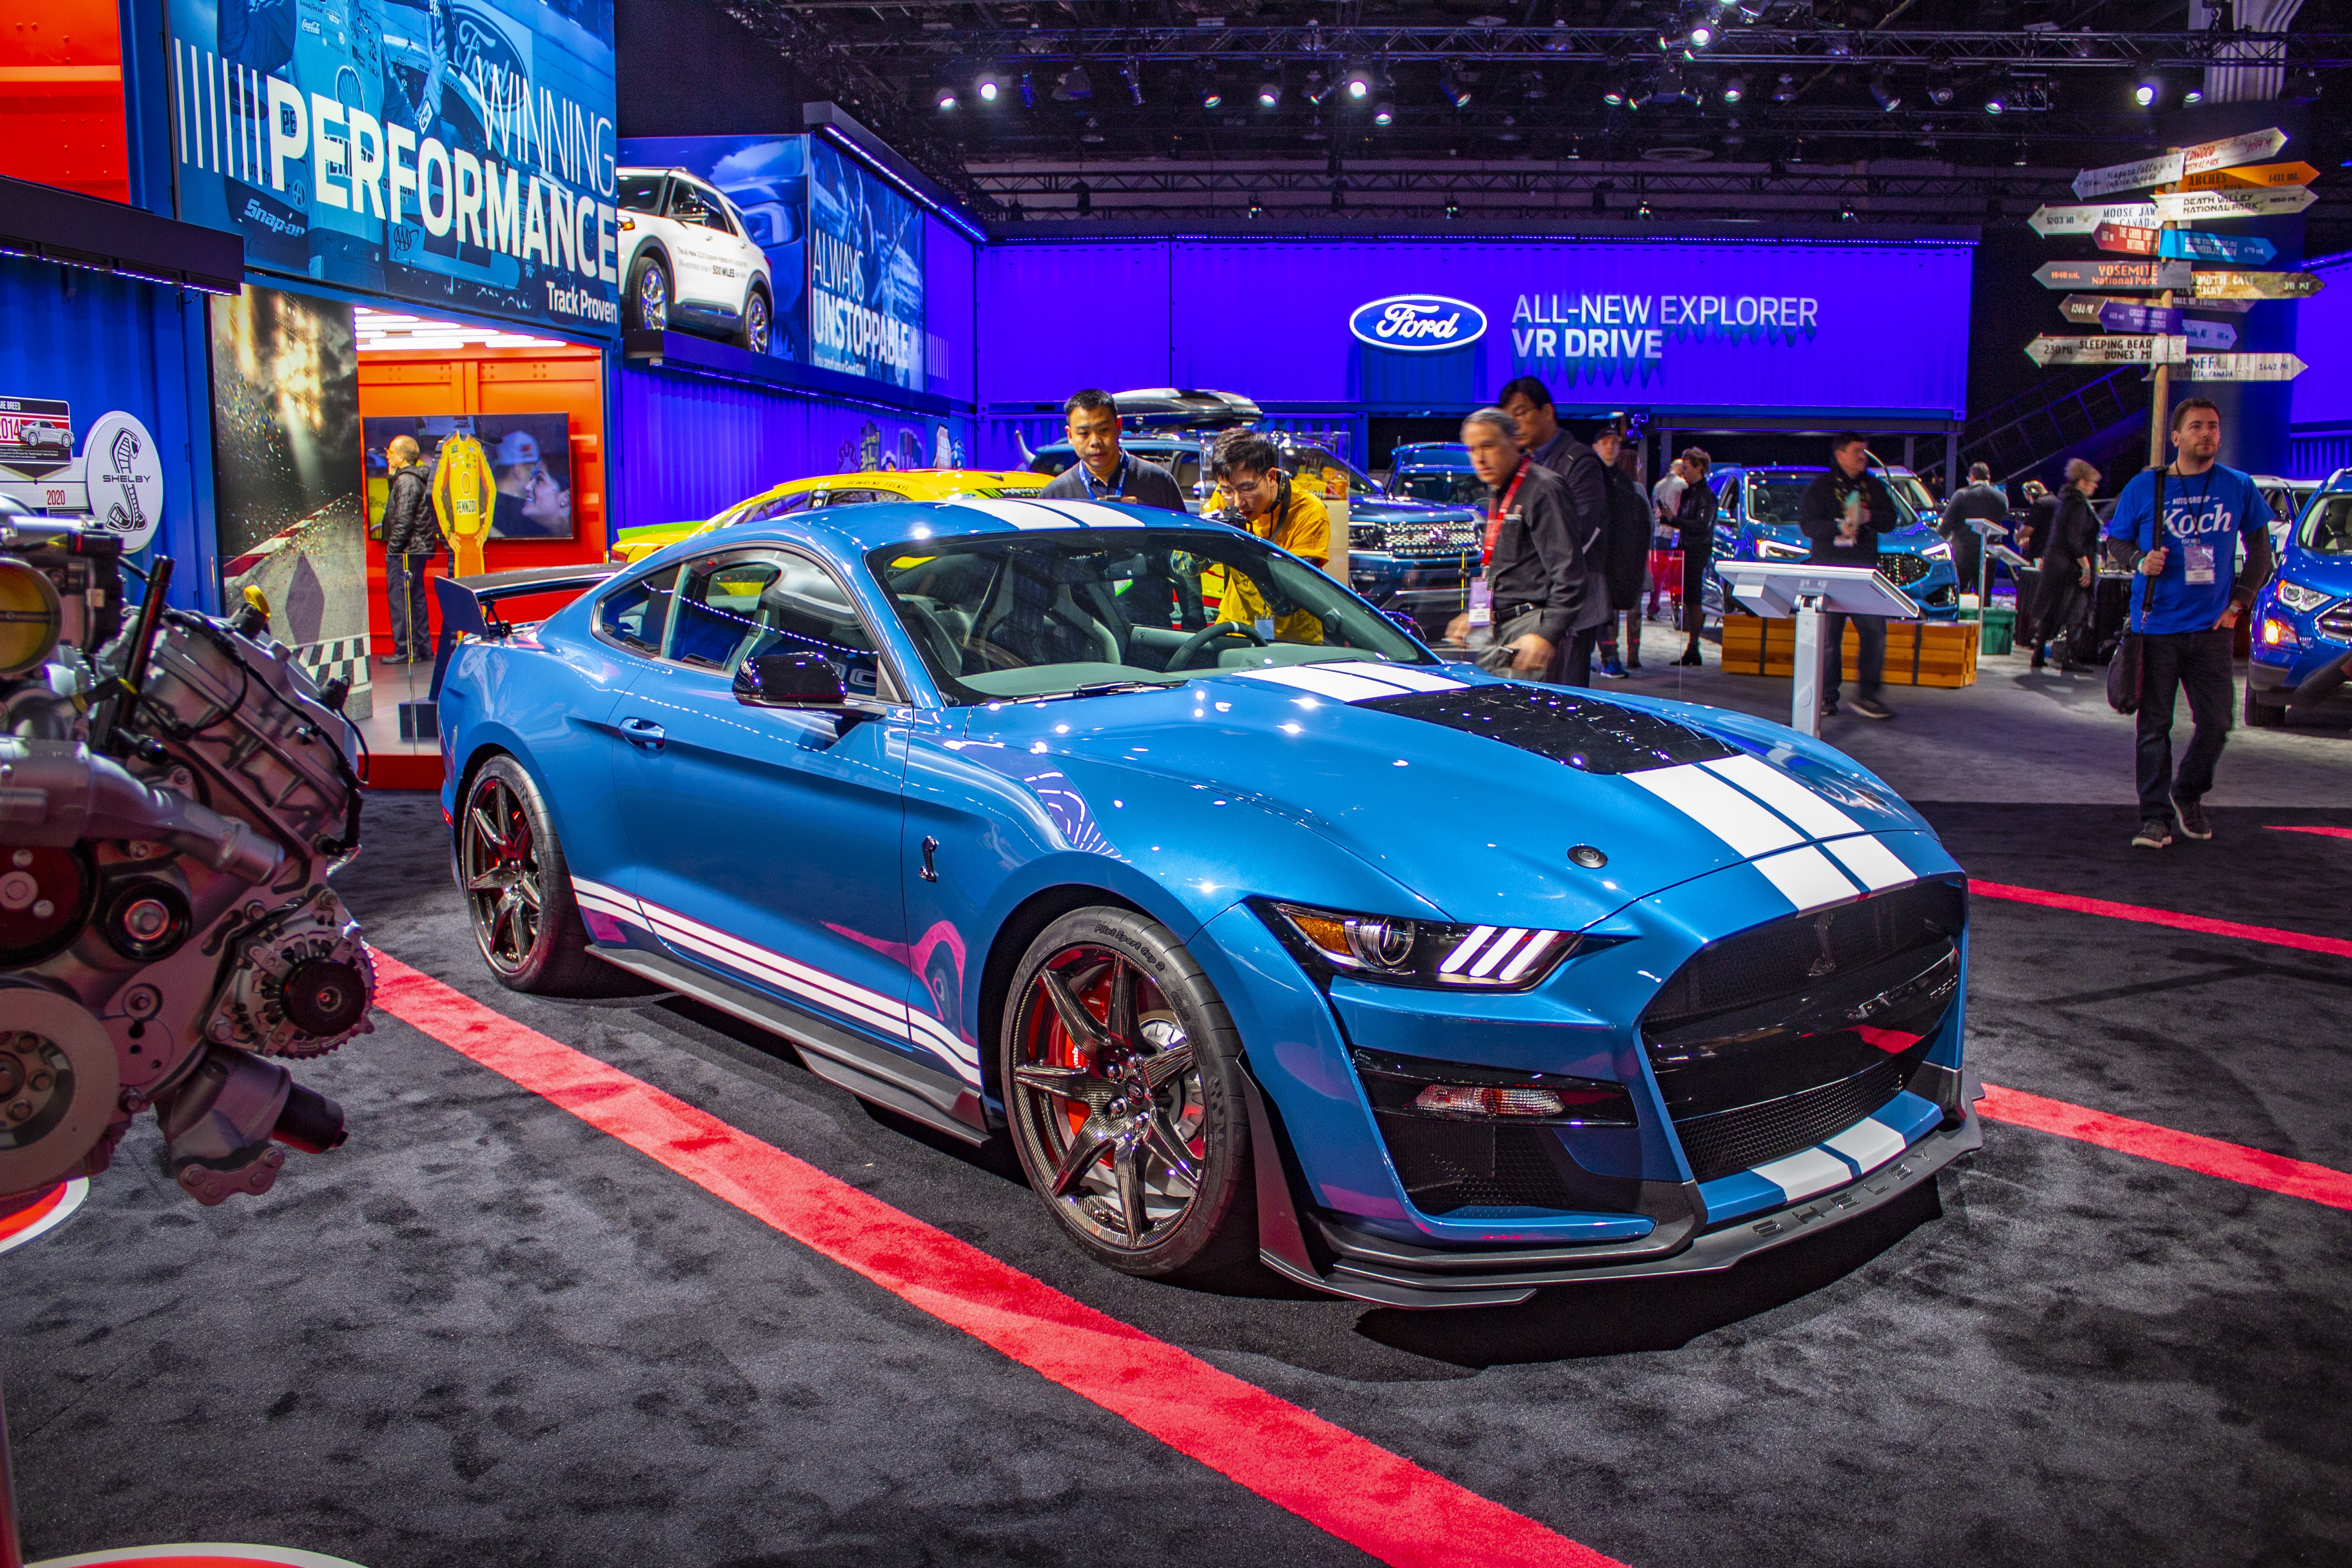 2020 Ford Mustang Shelby Gt500 Pictures Photos Wallpapers   2020 5184x3456